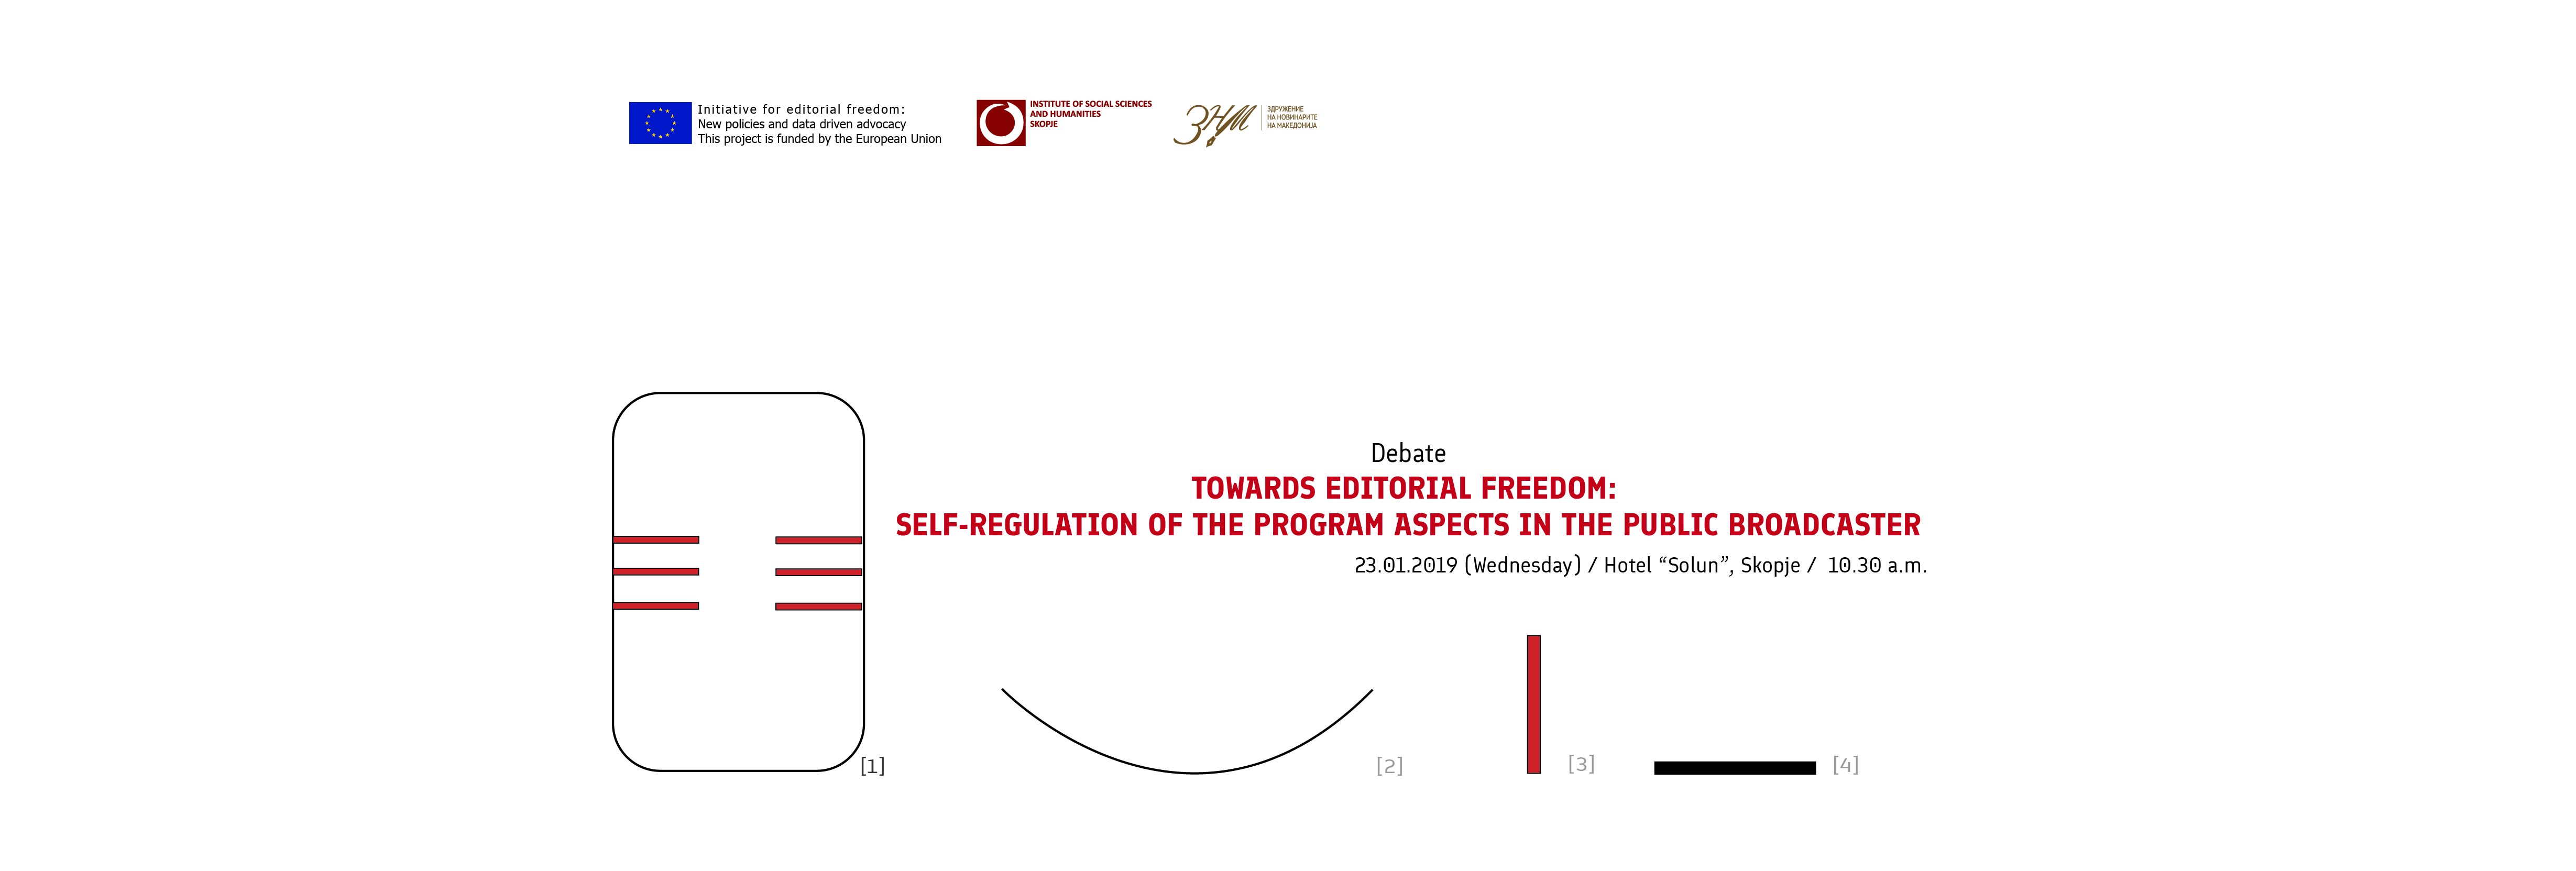 New Report On Self Regulation And >> Isshs Towards Editorial Freedom Self Regulation Of The Program